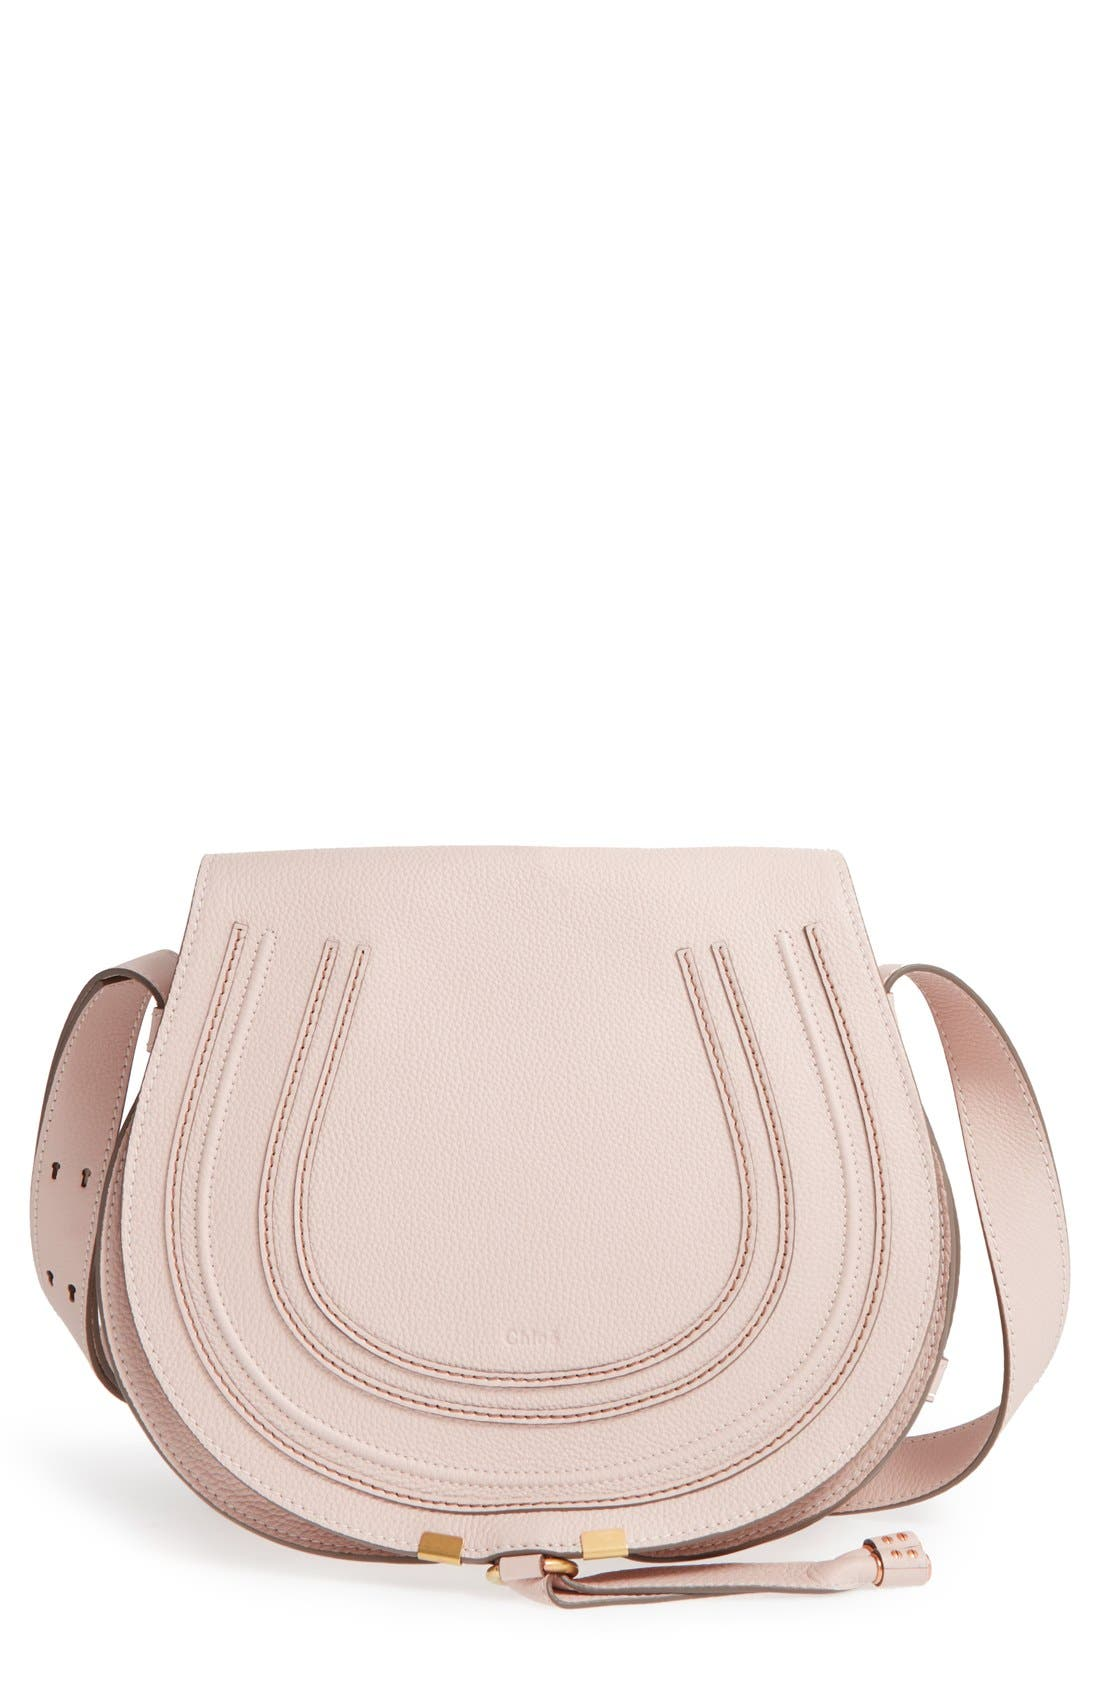 'Marcie - Medium' Leather Crossbody Bag,                         Main,                         color, Abstract White